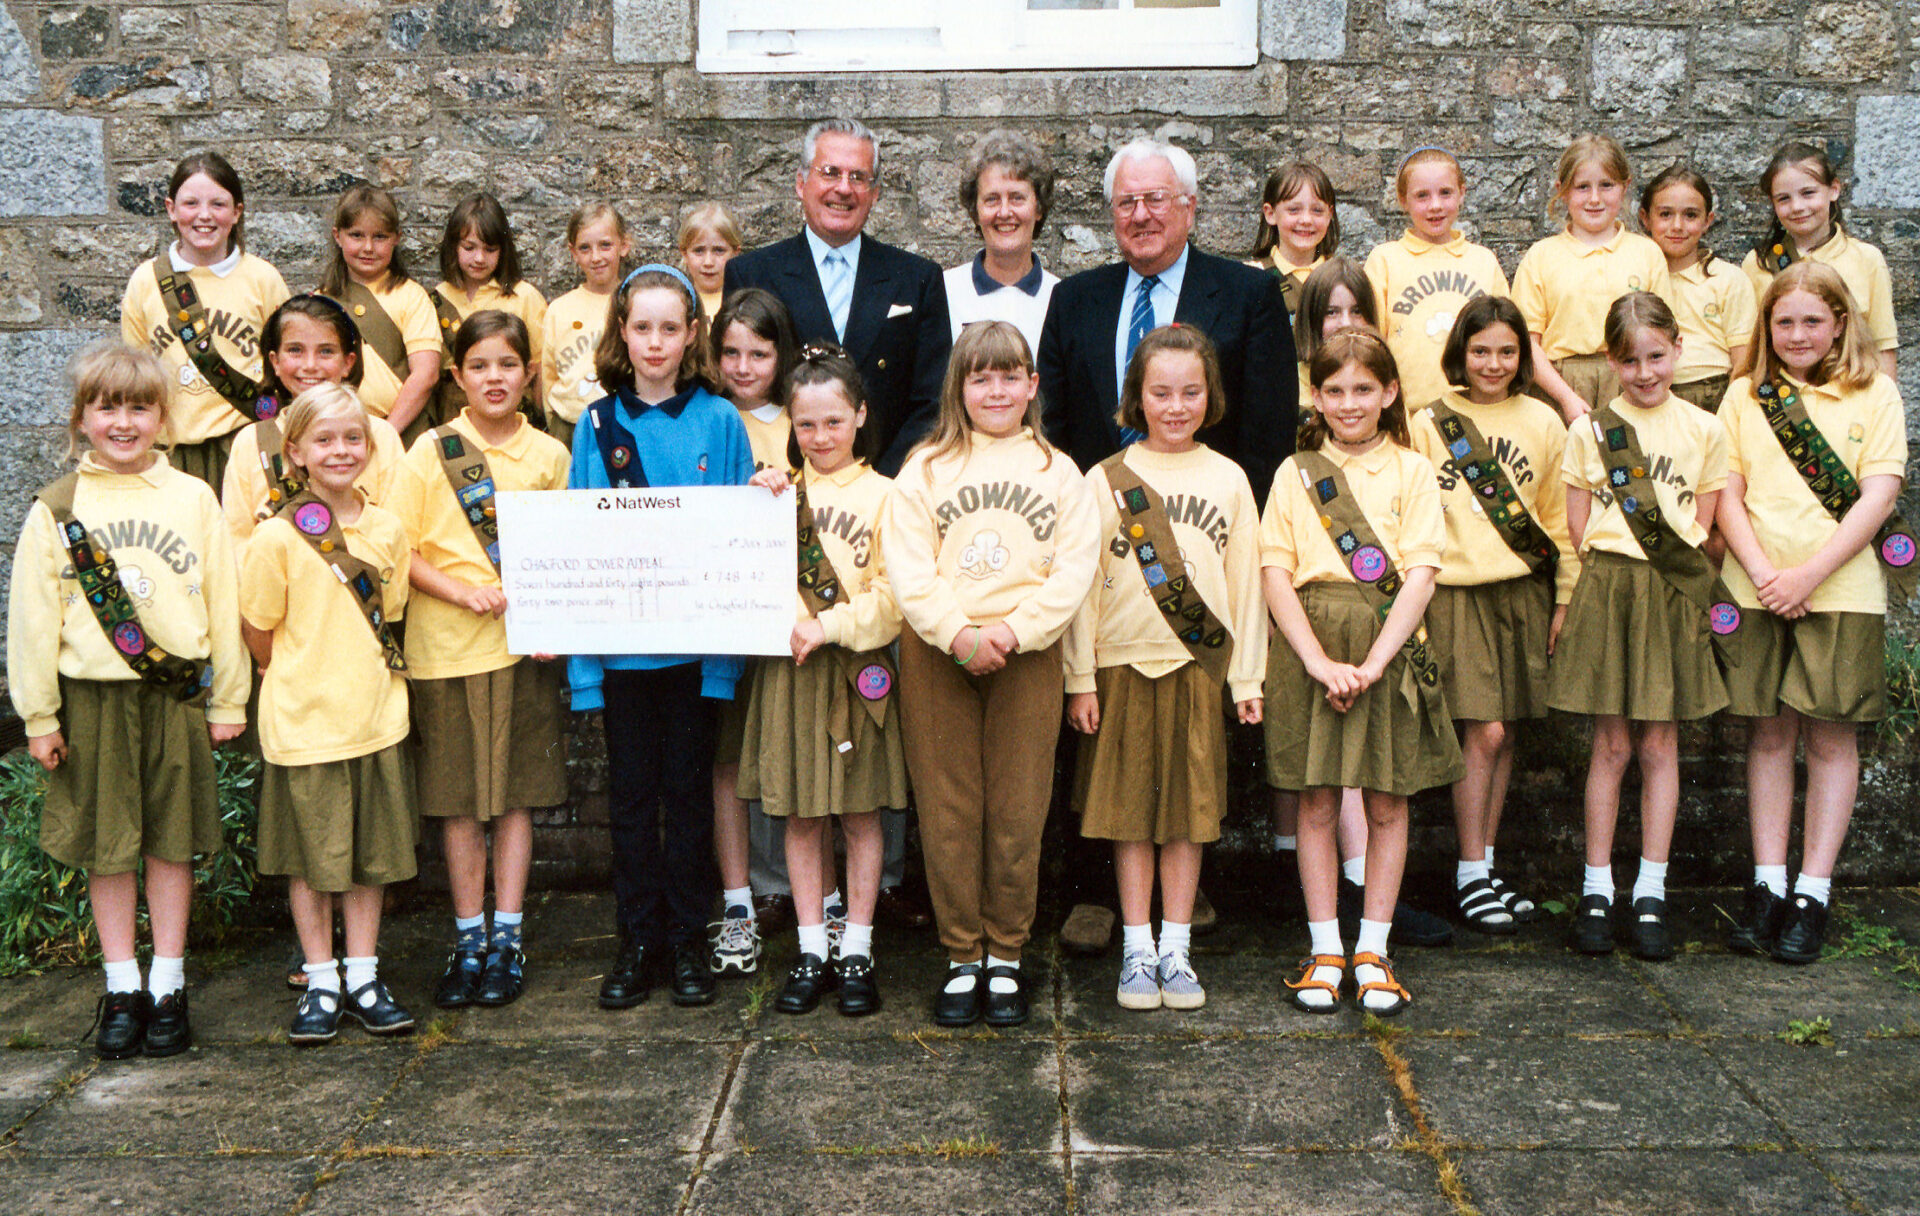 Proud Chagford Brownies presenting a cheque for £748 to members of the Church Tower Appeal Committee in 2000.